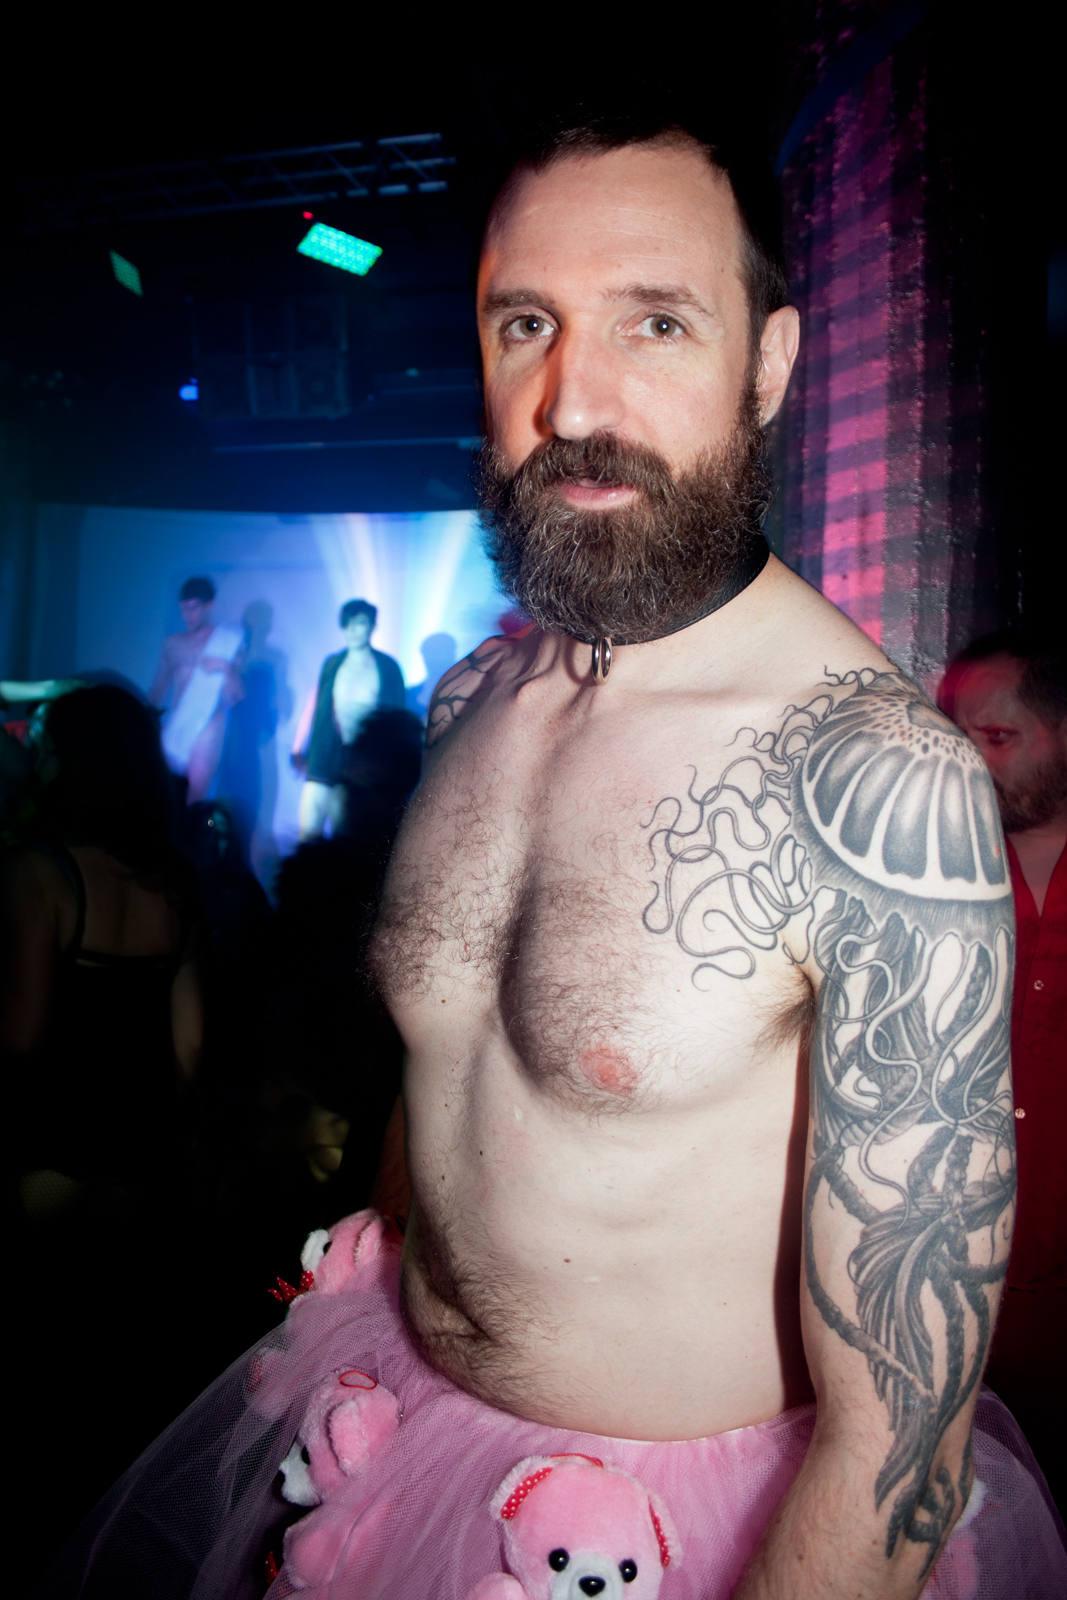 NYC Club-Photo Bex Wade-25.jpg